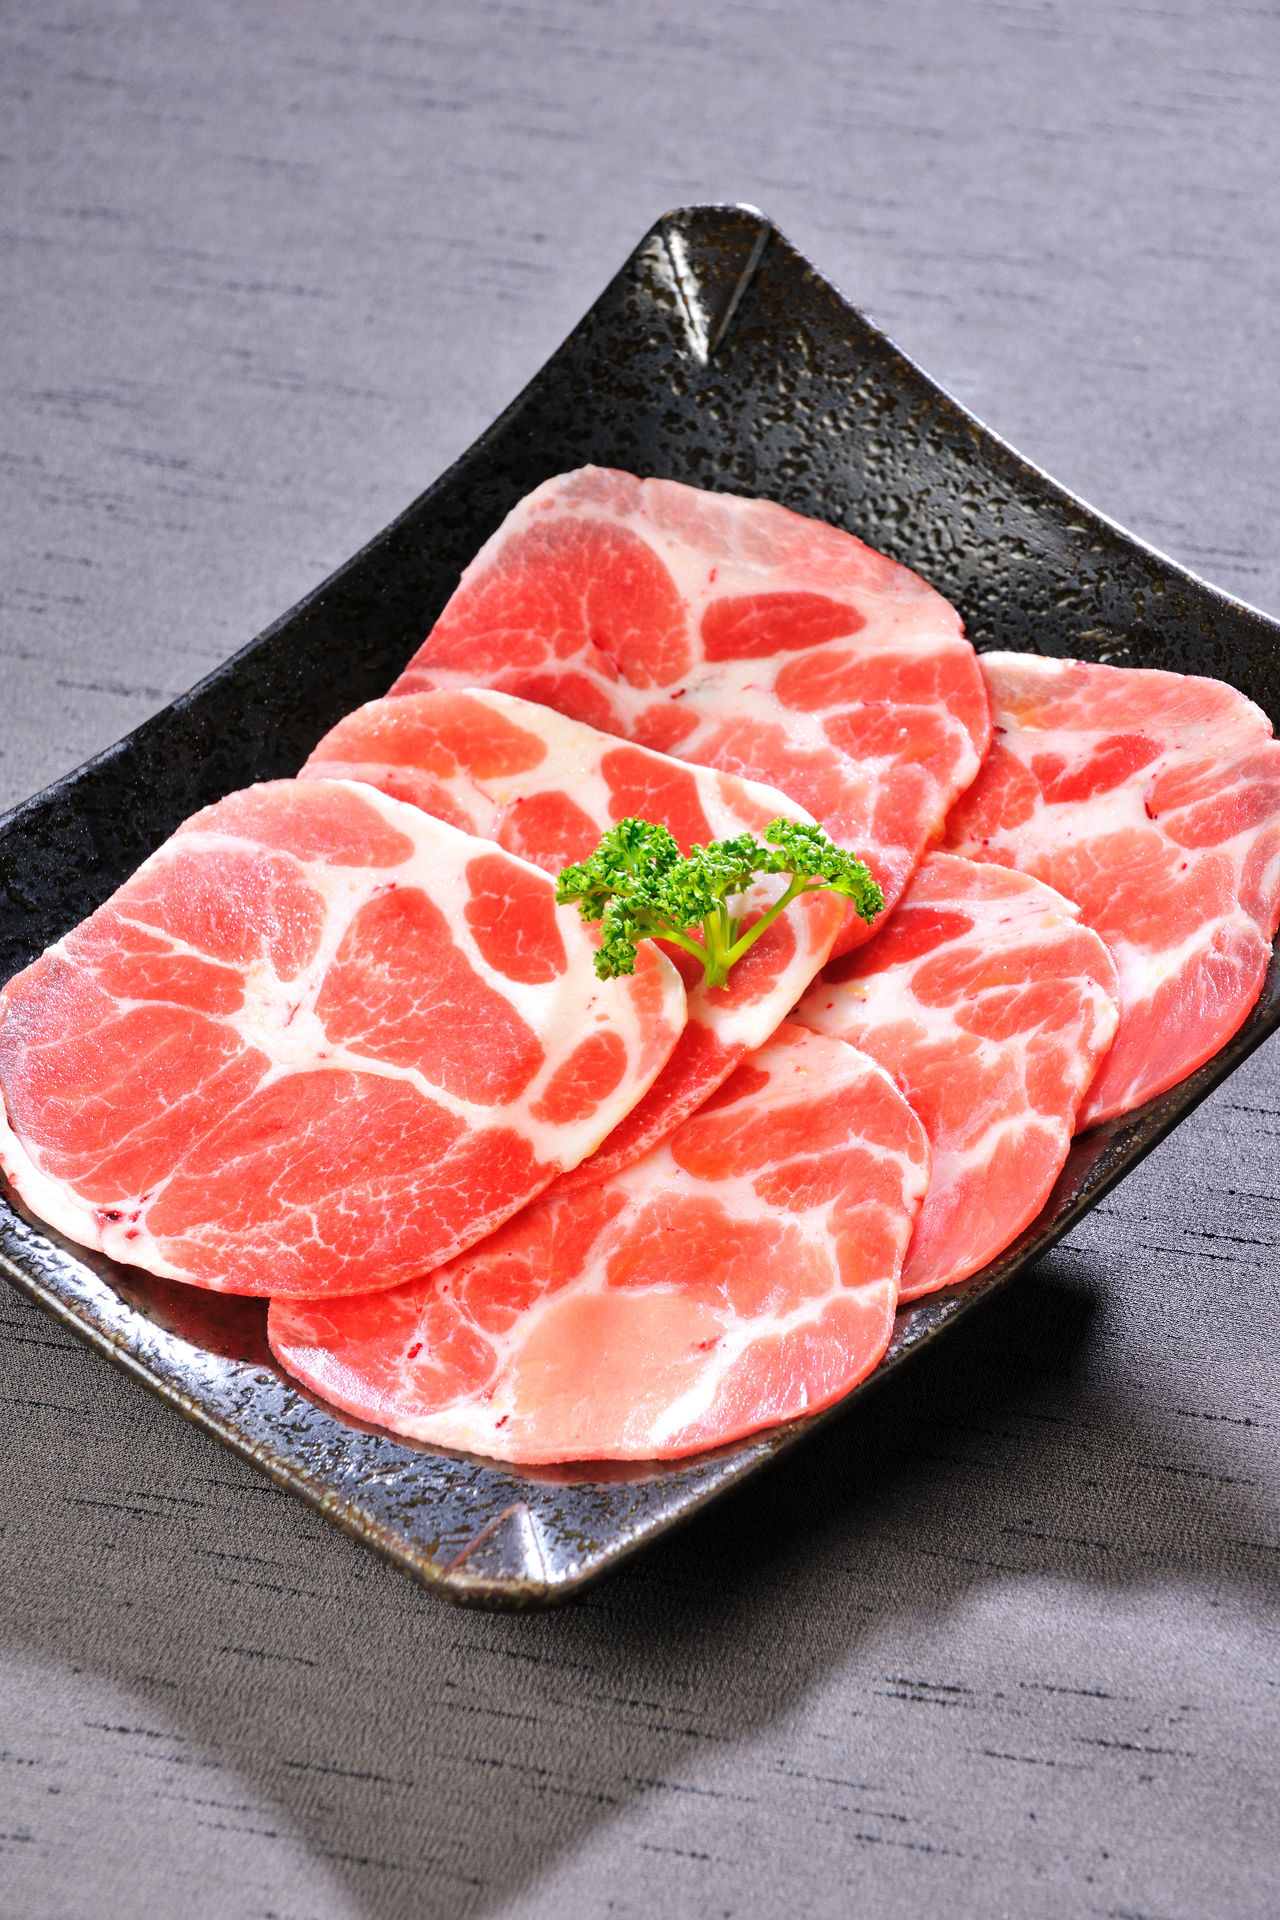 Appetite Beef Close-up Fillet Food Food And Drink Fresh Freshness Happy Herb Indoors  Meat No People Pork Raw Food Ready-to-eat Red Meat Serving Size SLICE Taiwan